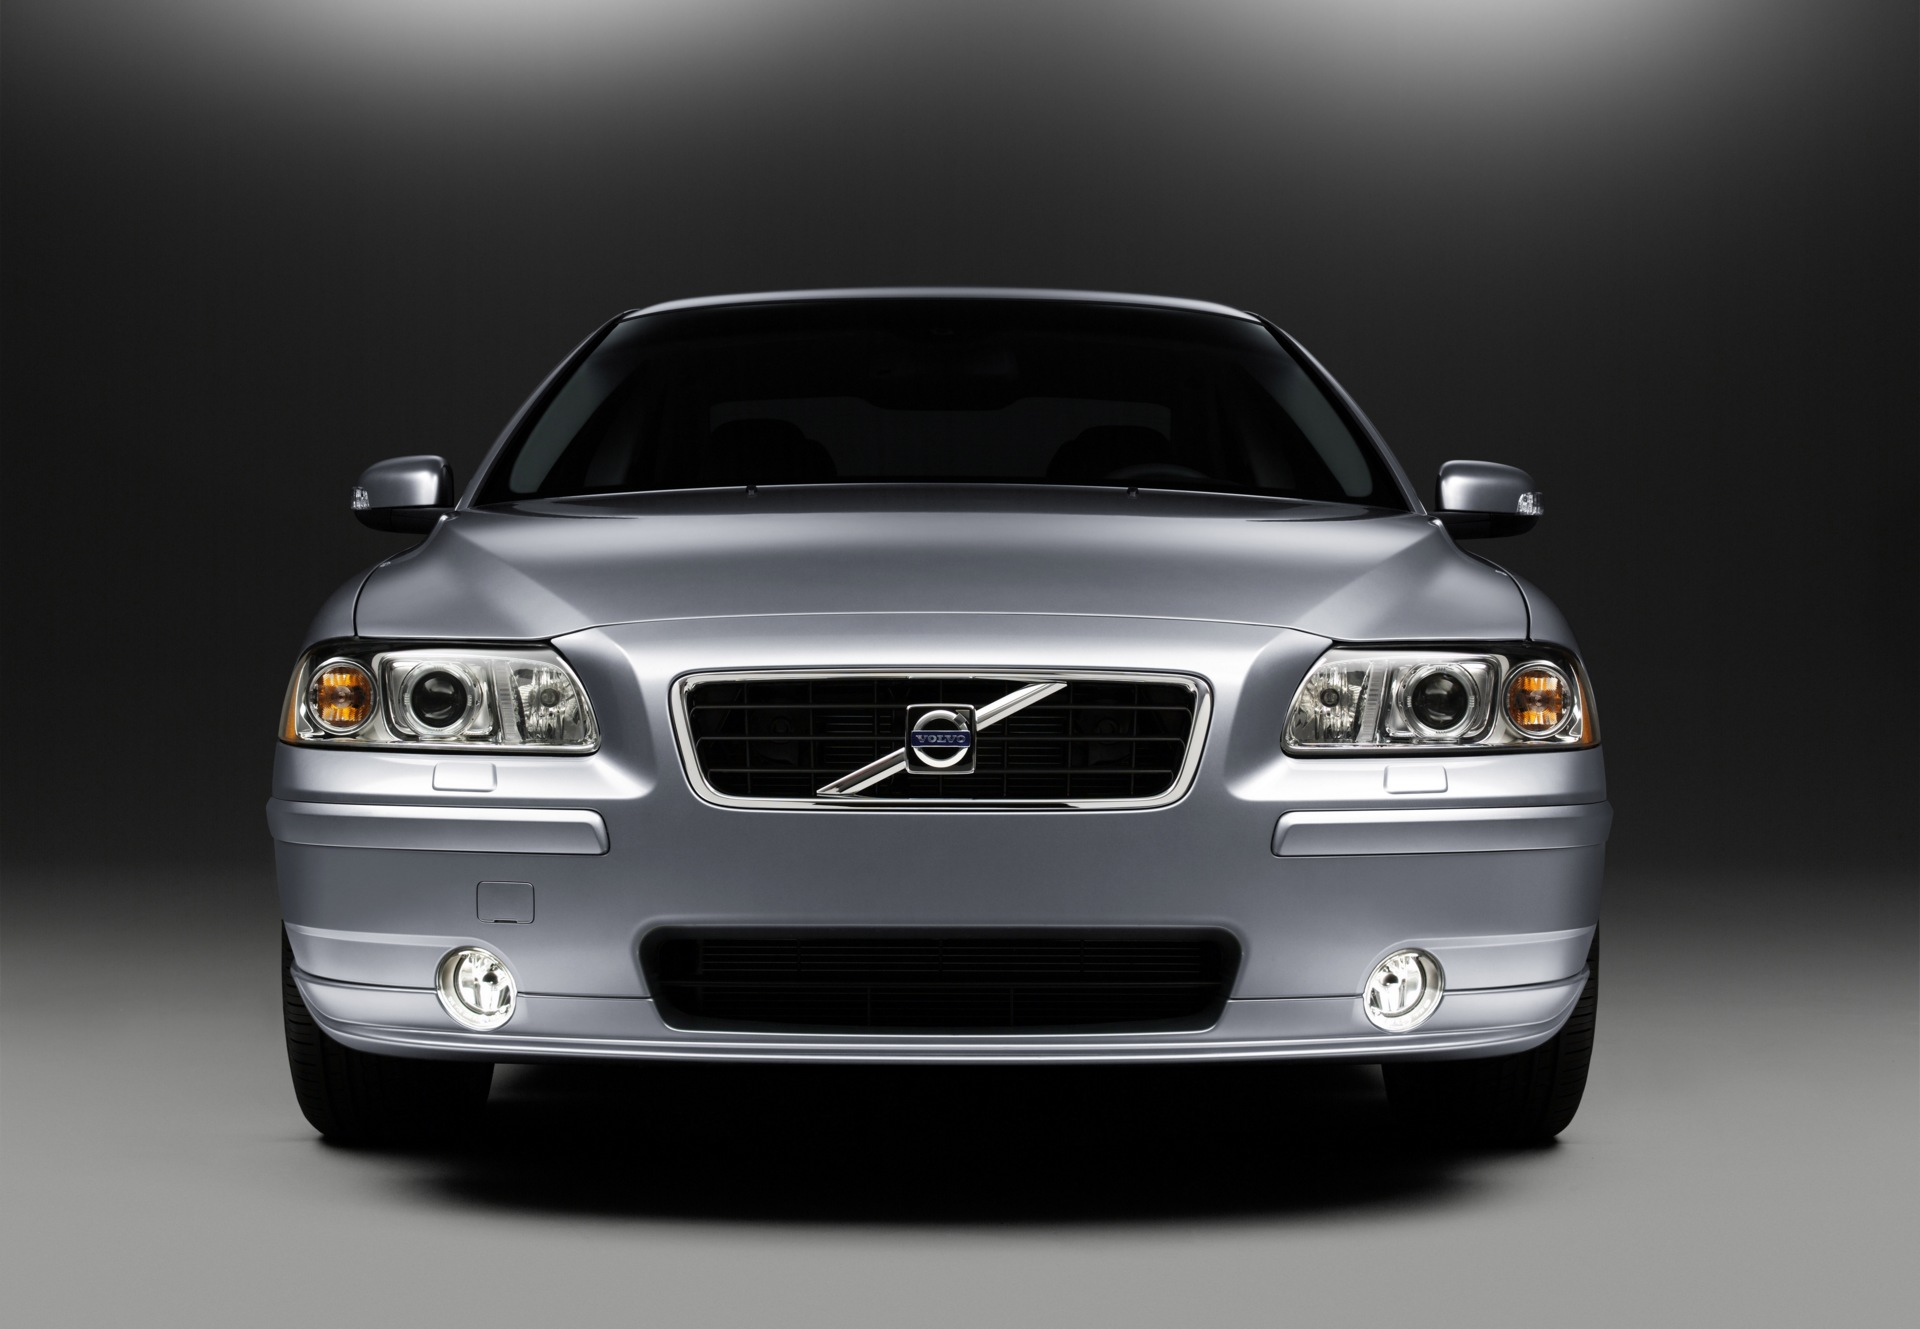 2008 volvo s60. Black Bedroom Furniture Sets. Home Design Ideas